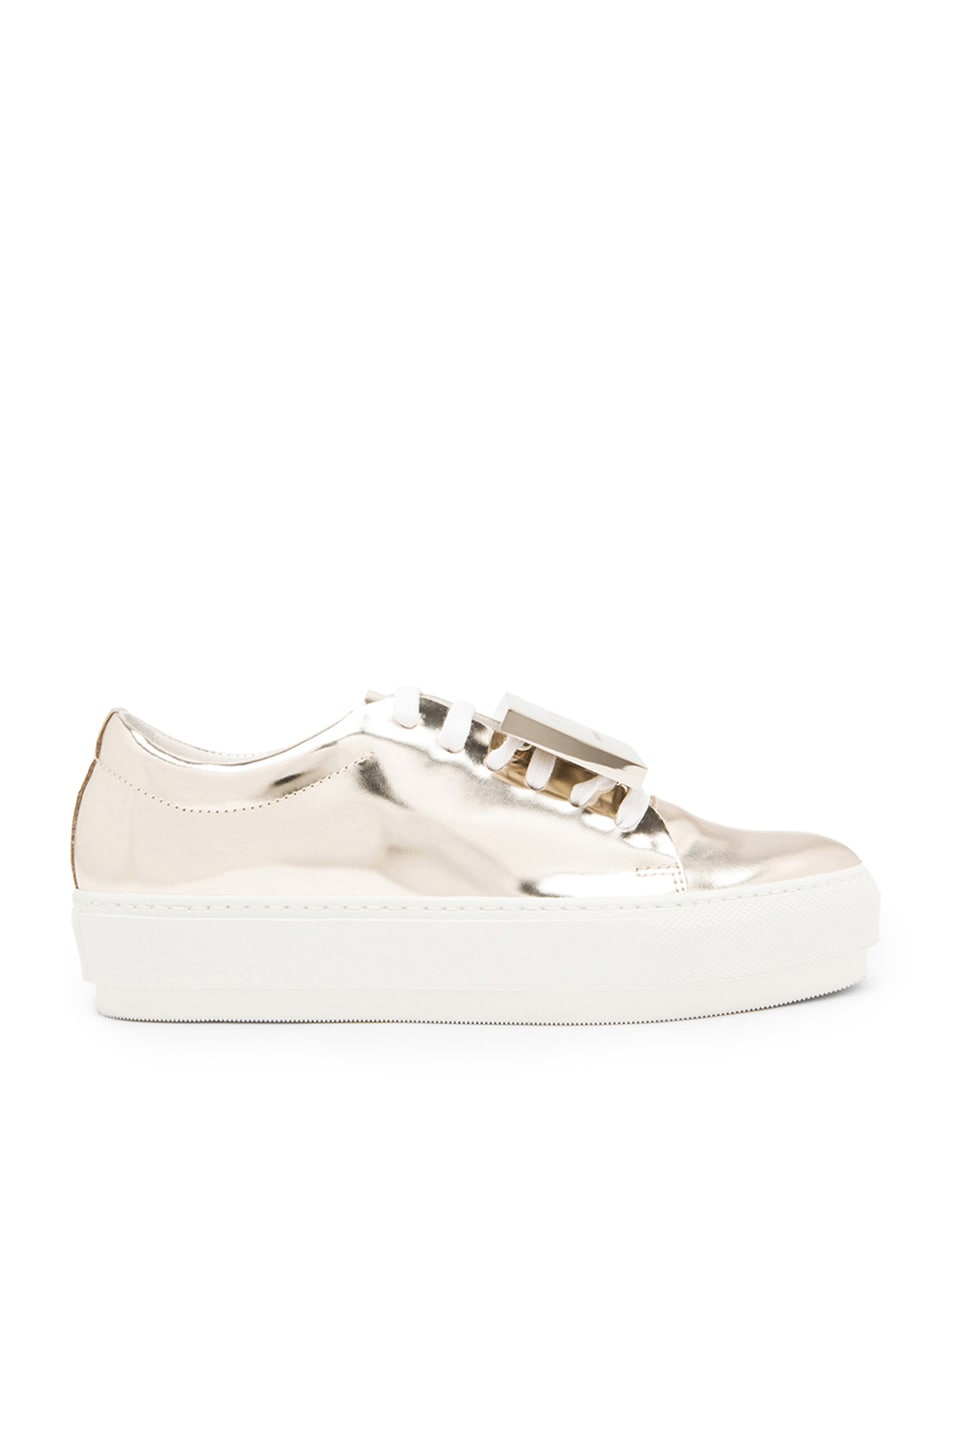 Image 1 of Acne Studios Adriana Patent Leather Sneakers in Light Gold